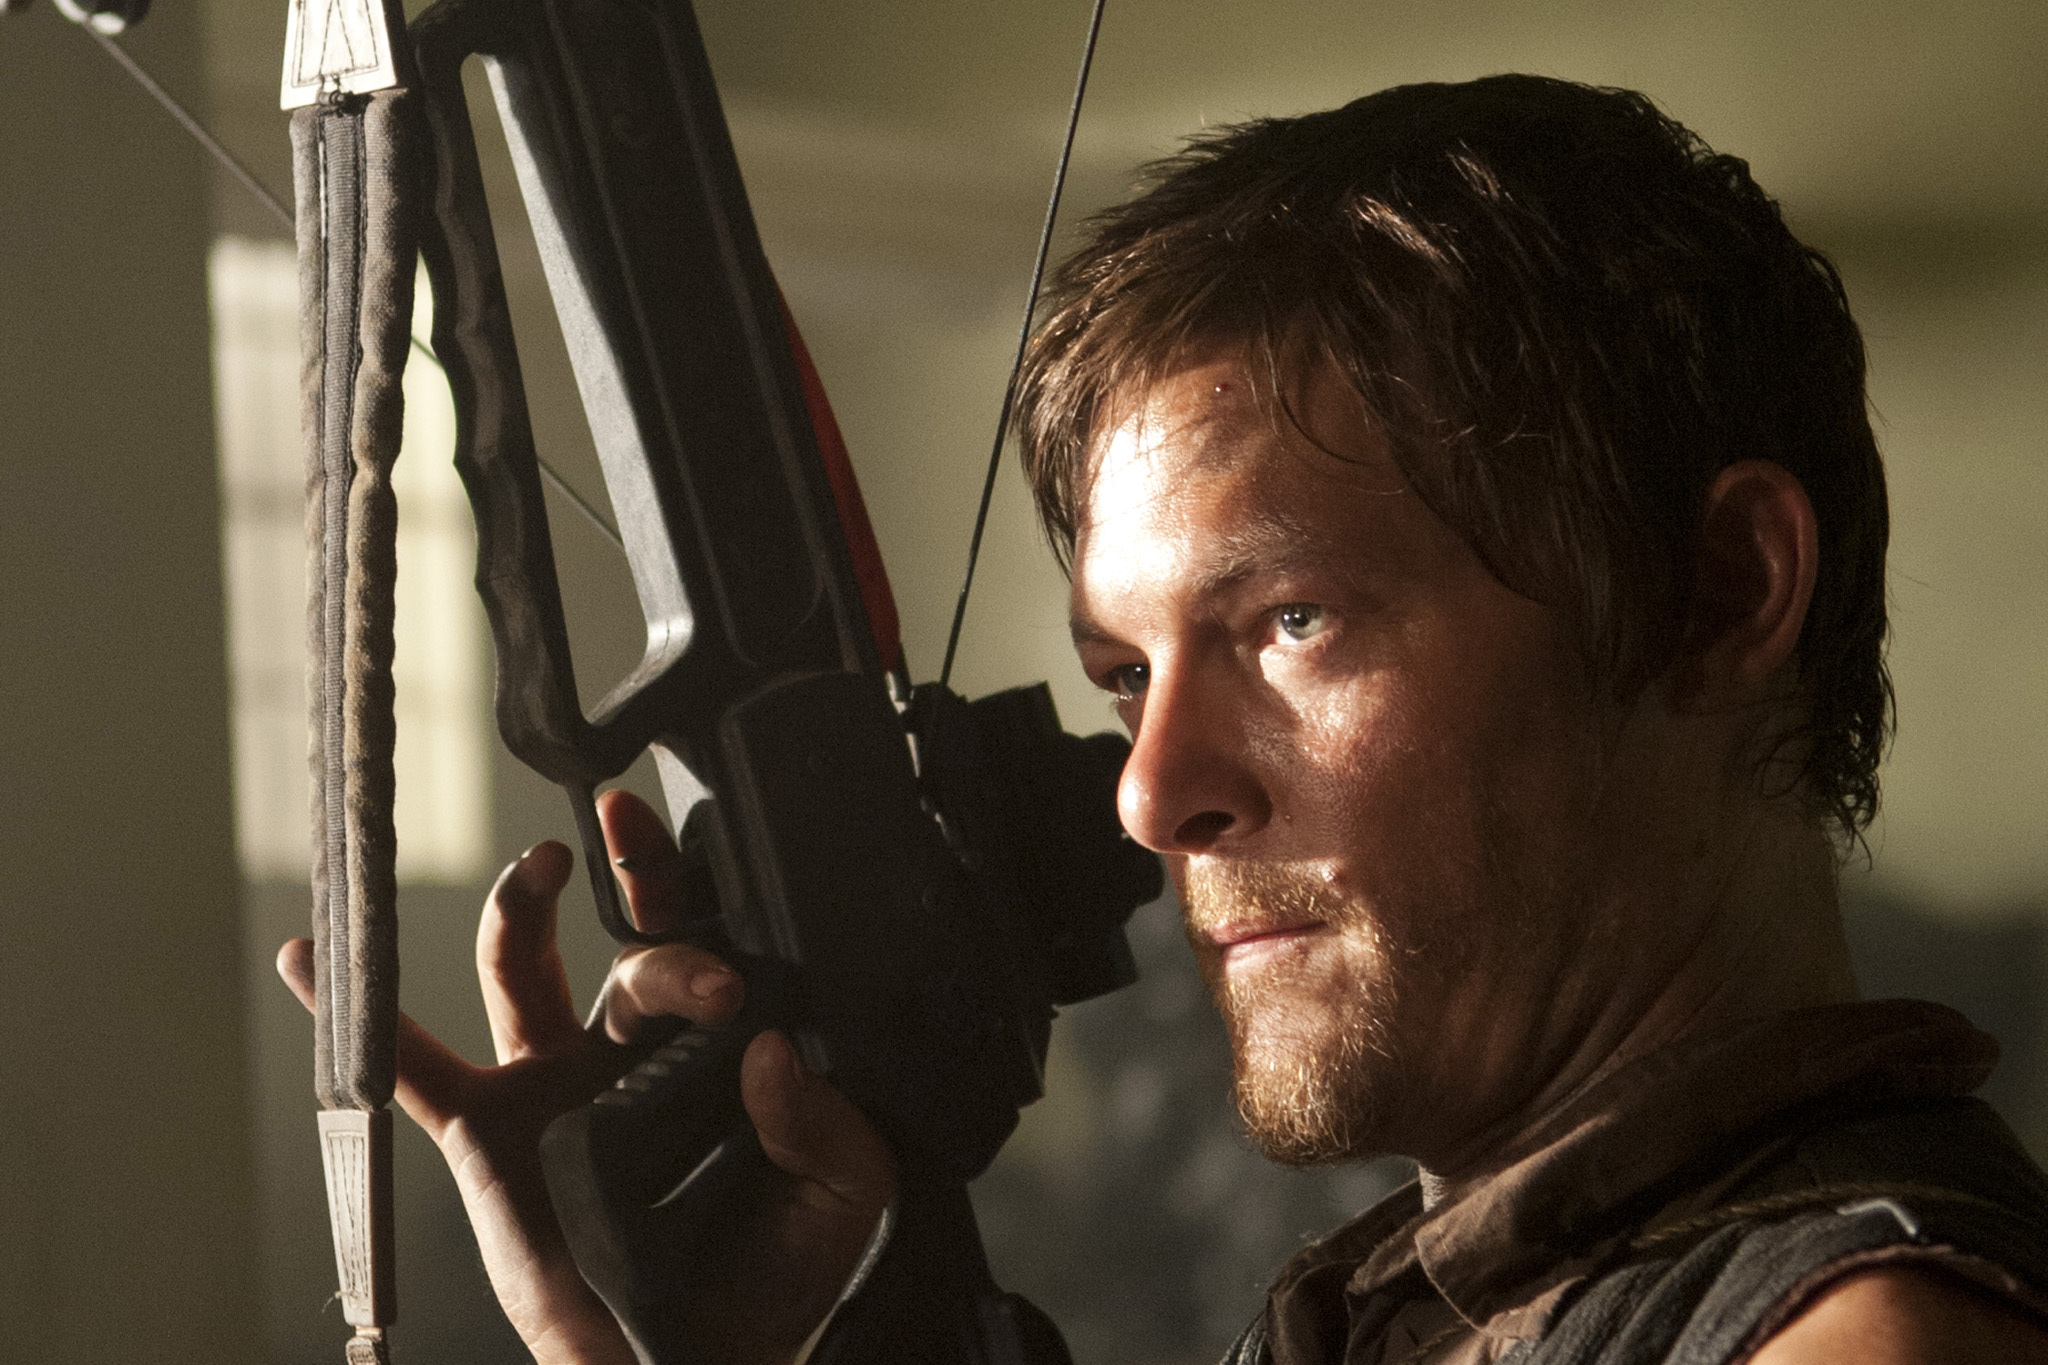 Interview: The Walking Dead star Norman Reedus